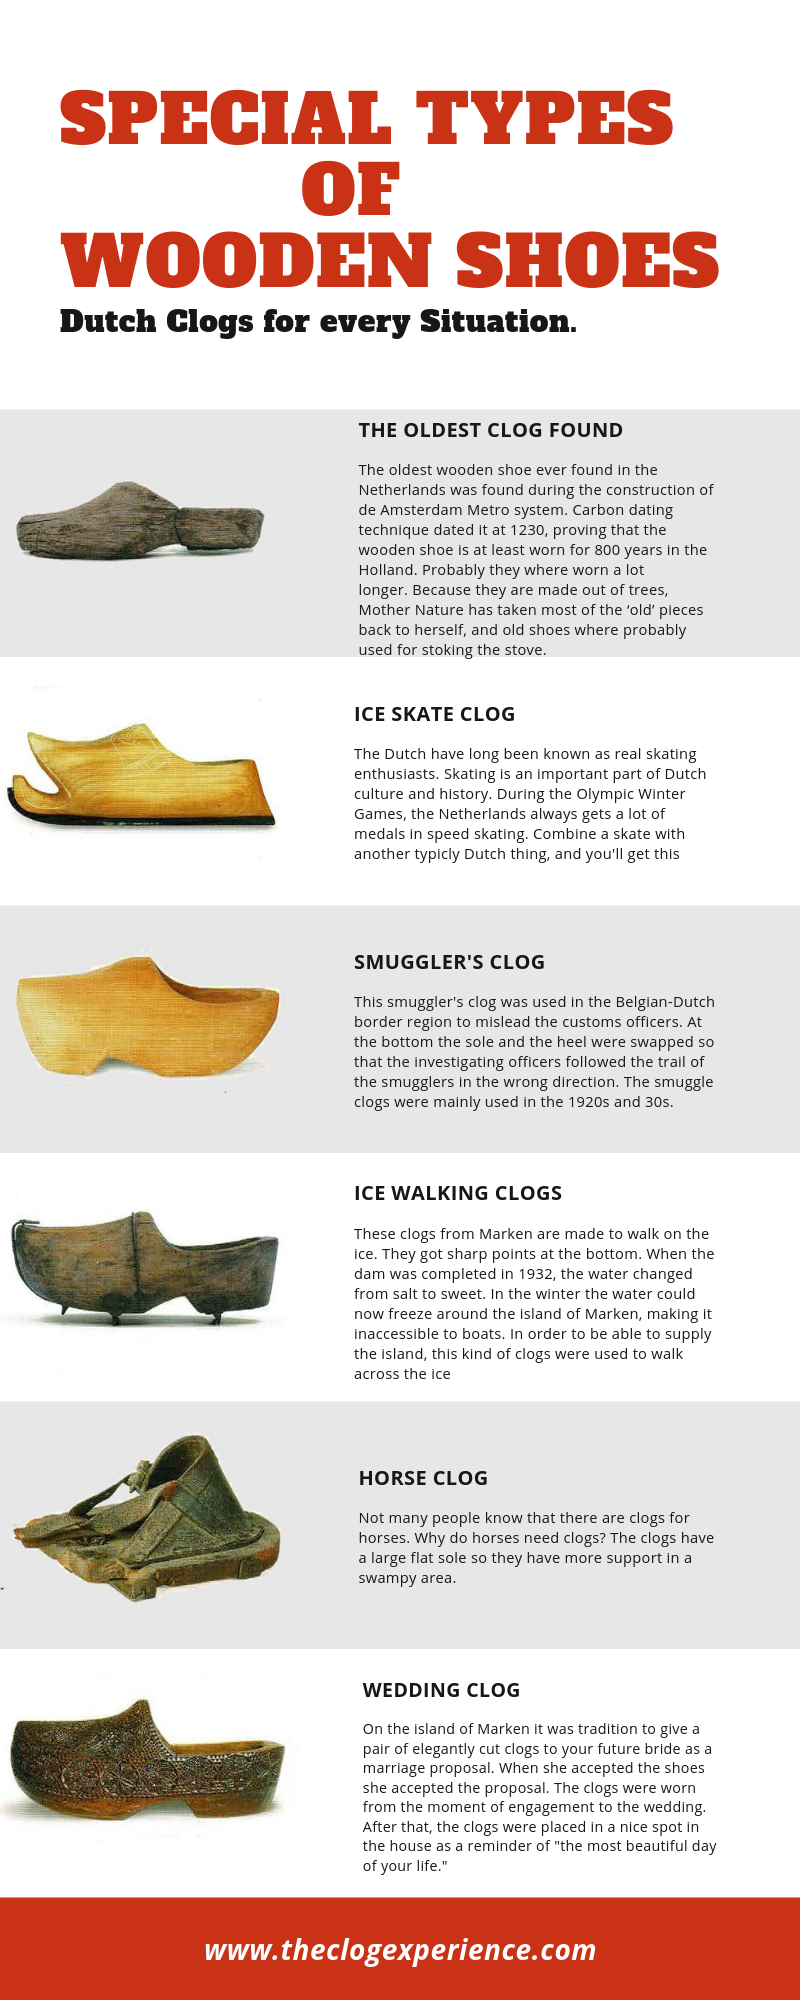 Special Types of Wooden Shoes